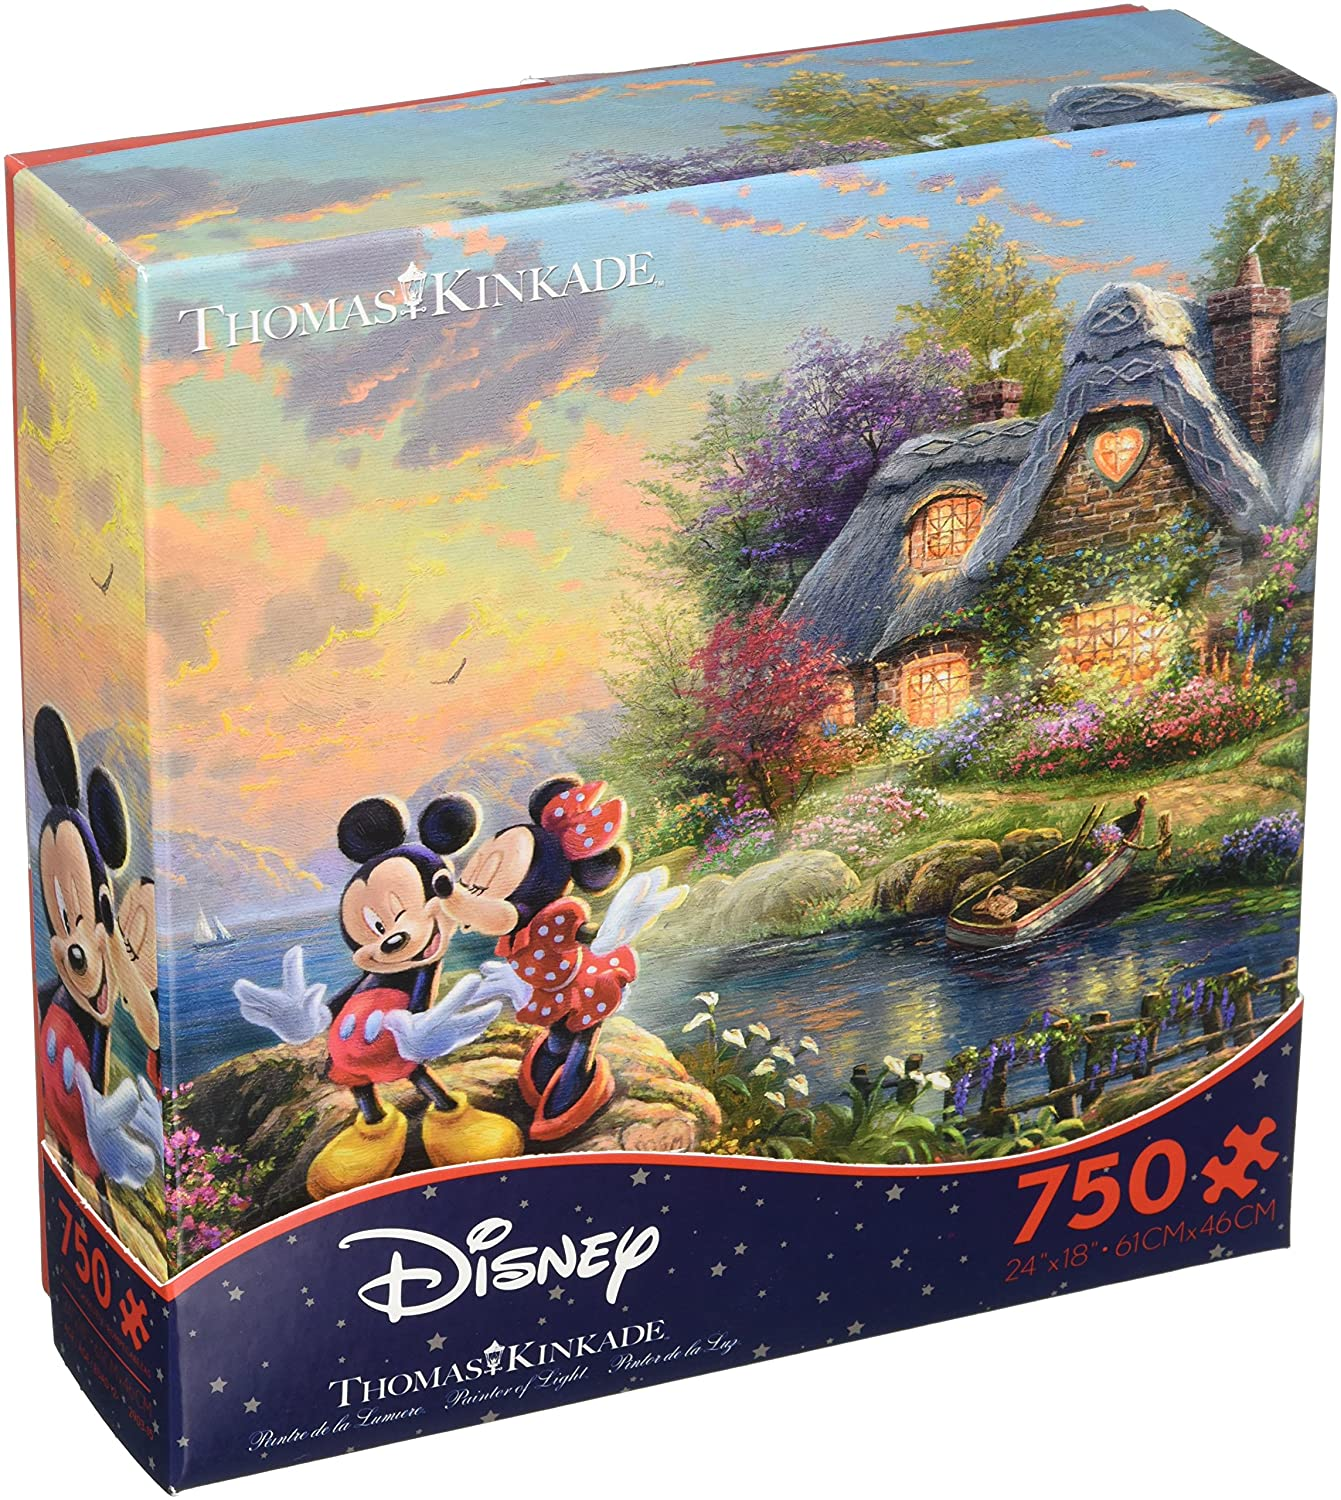 Thomas B079G4HXLC Pieces Kinkade Disney Mickey and Minnie Kissing Cottage in front of Cottage 750 Pieces B079G4HXLC, シングウマチ:a233e04e --- ero-shop-kupidon.ru